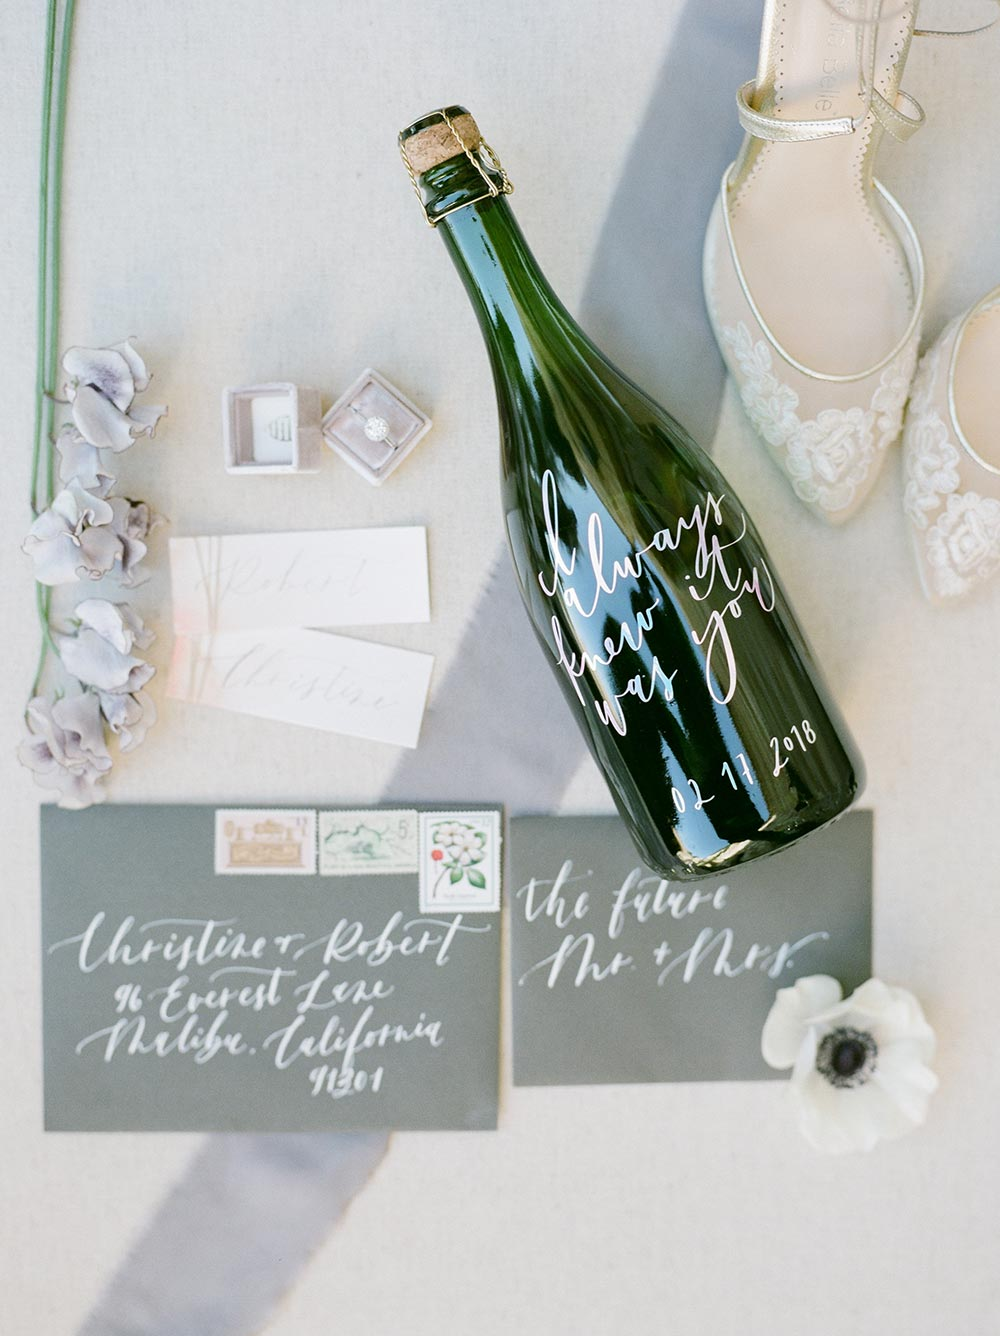 calligraphed wedding stationery and personalized champagne bottle